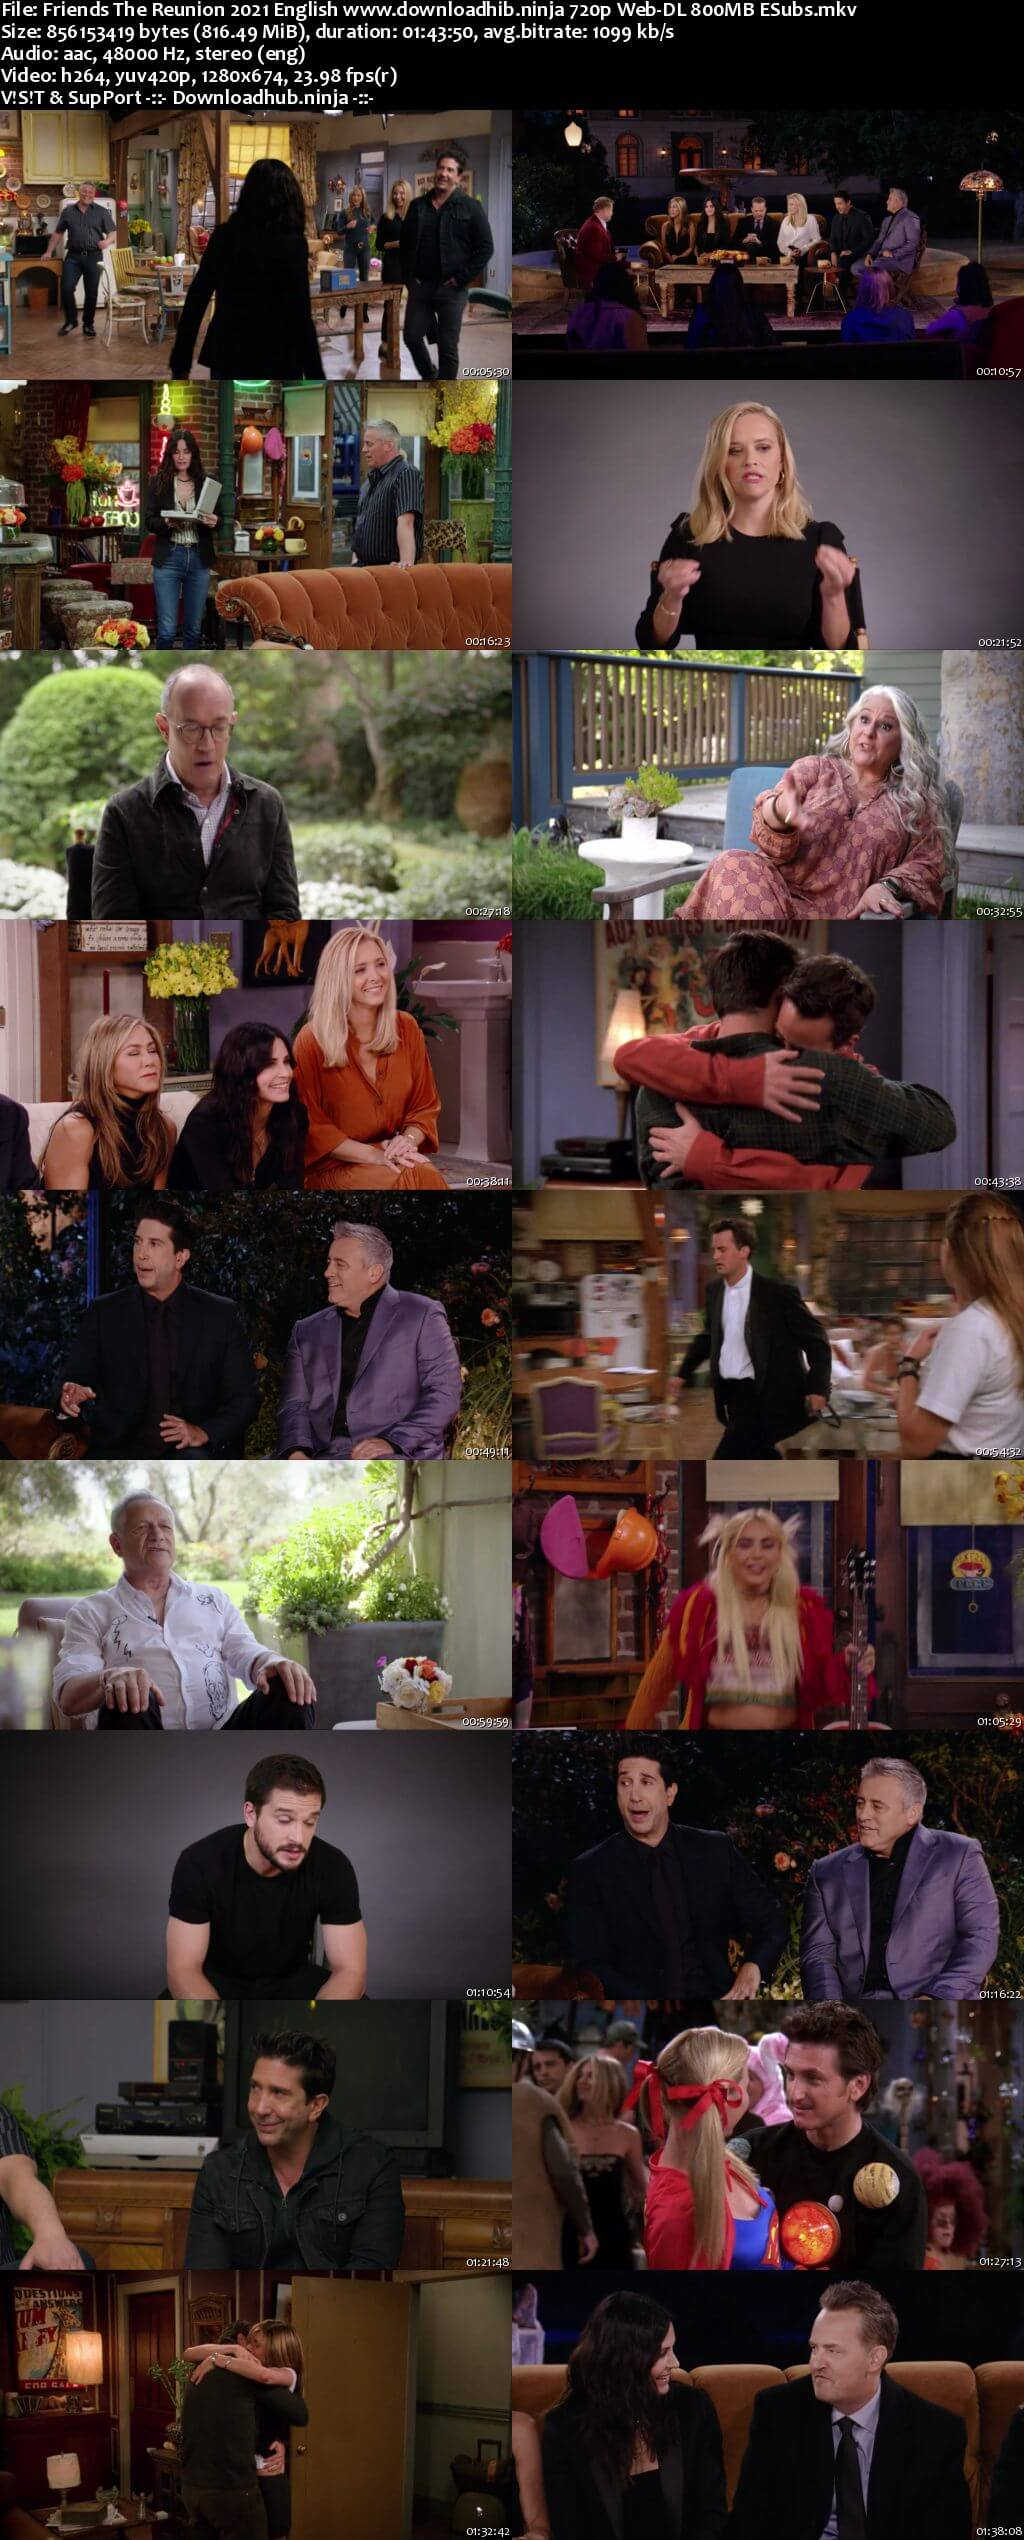 Friends The Reunion 2021 English 720p Web-DL 800MB ESubs